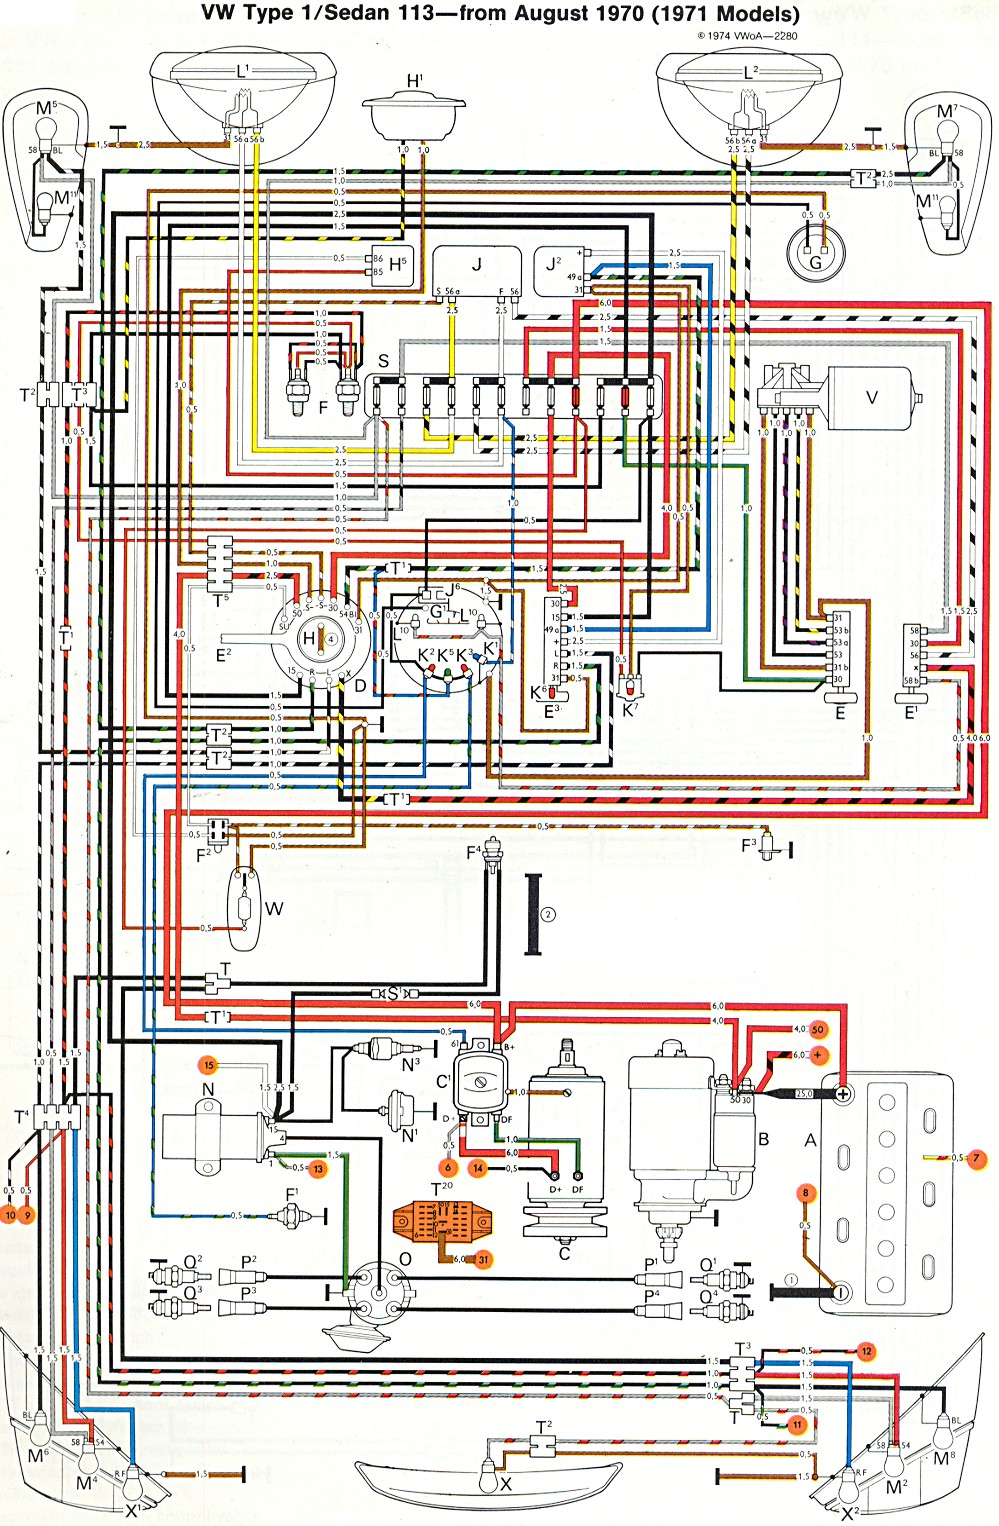 1970 Vw Engine Wiring Diagram Pictures Need 57 F100 Custom Cab Ford Truck Enthusiasts 73 Harness Schematics Diagrams U2022 Rh Parntesis Co 1976 Beetle